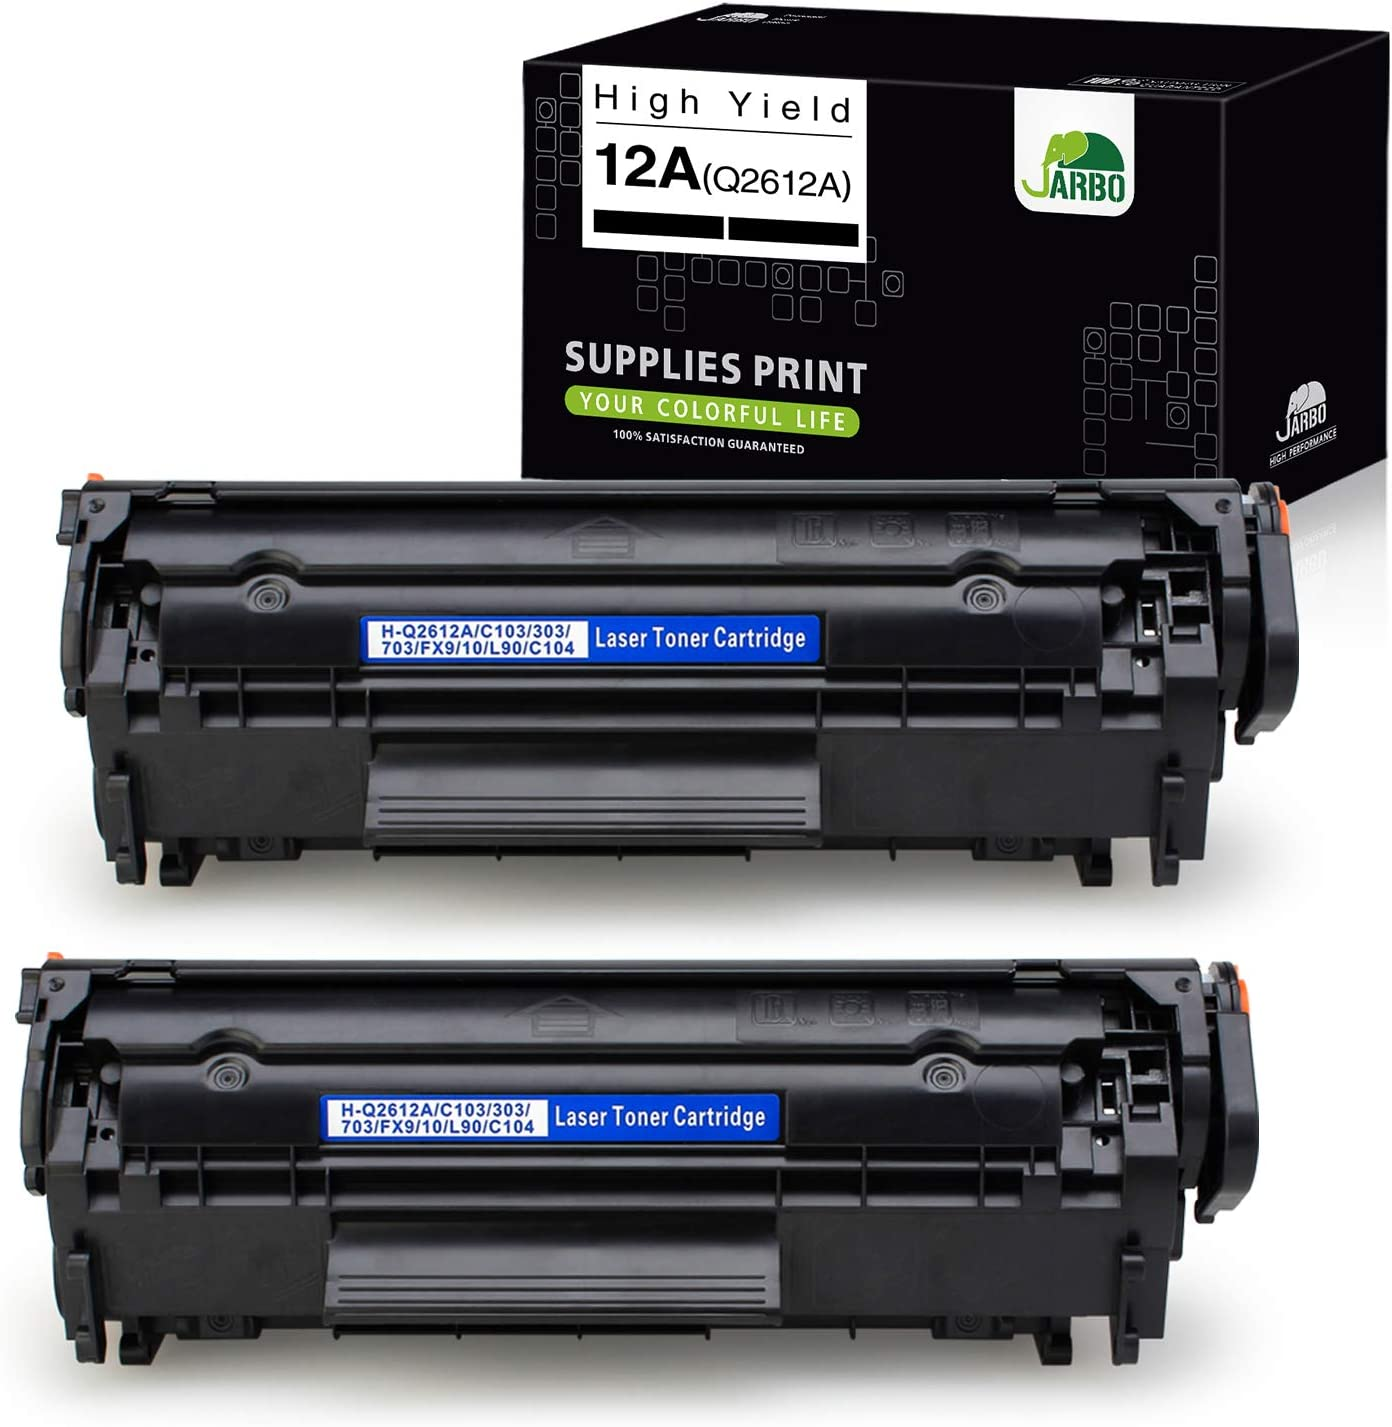 JARBO Compatible Toner Cartridges Replacement for HP 12A Q2612A, Use with Laserjet 1020 1012 1022 1010 1018 1022n 3015 3030 3050 3052 3055 M1319F Printer (Black), 2-Pack